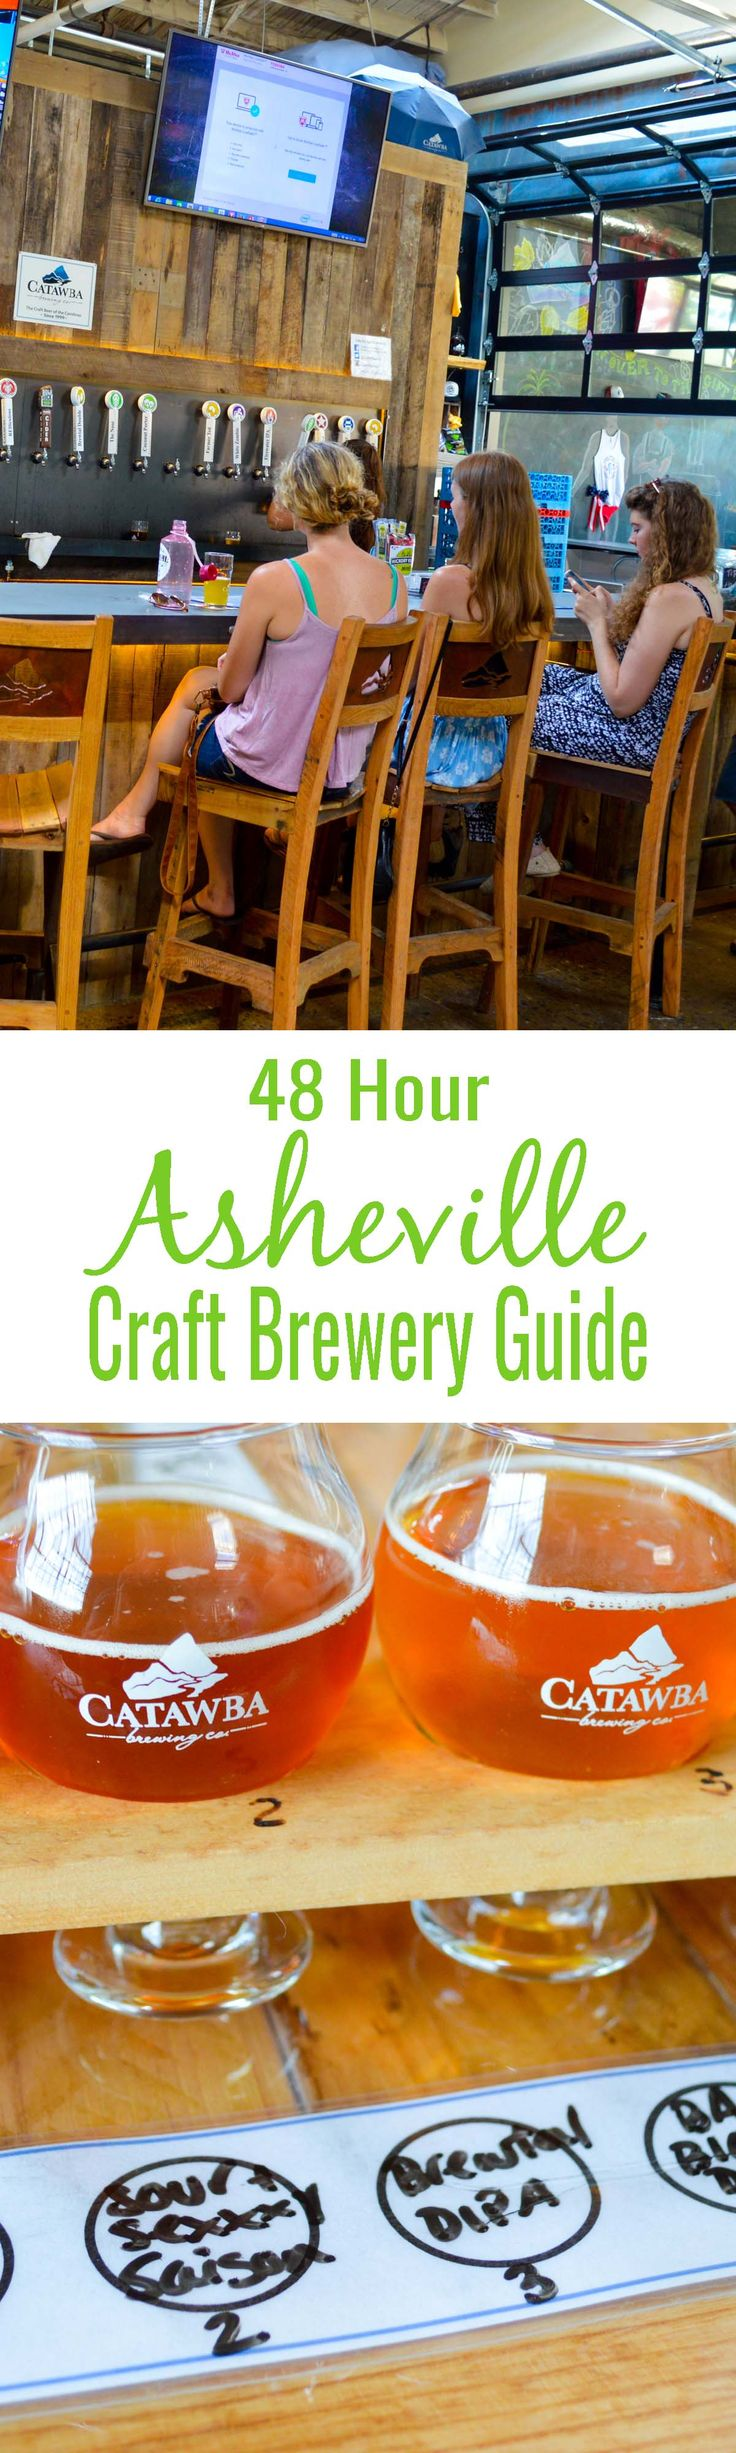 48 Hour Asheville Craft Brewery Guide - Our guide will help you create your own Asheville Brewery Tour. You won't be rushed, and you'll get to visit the breweries you want to visit.